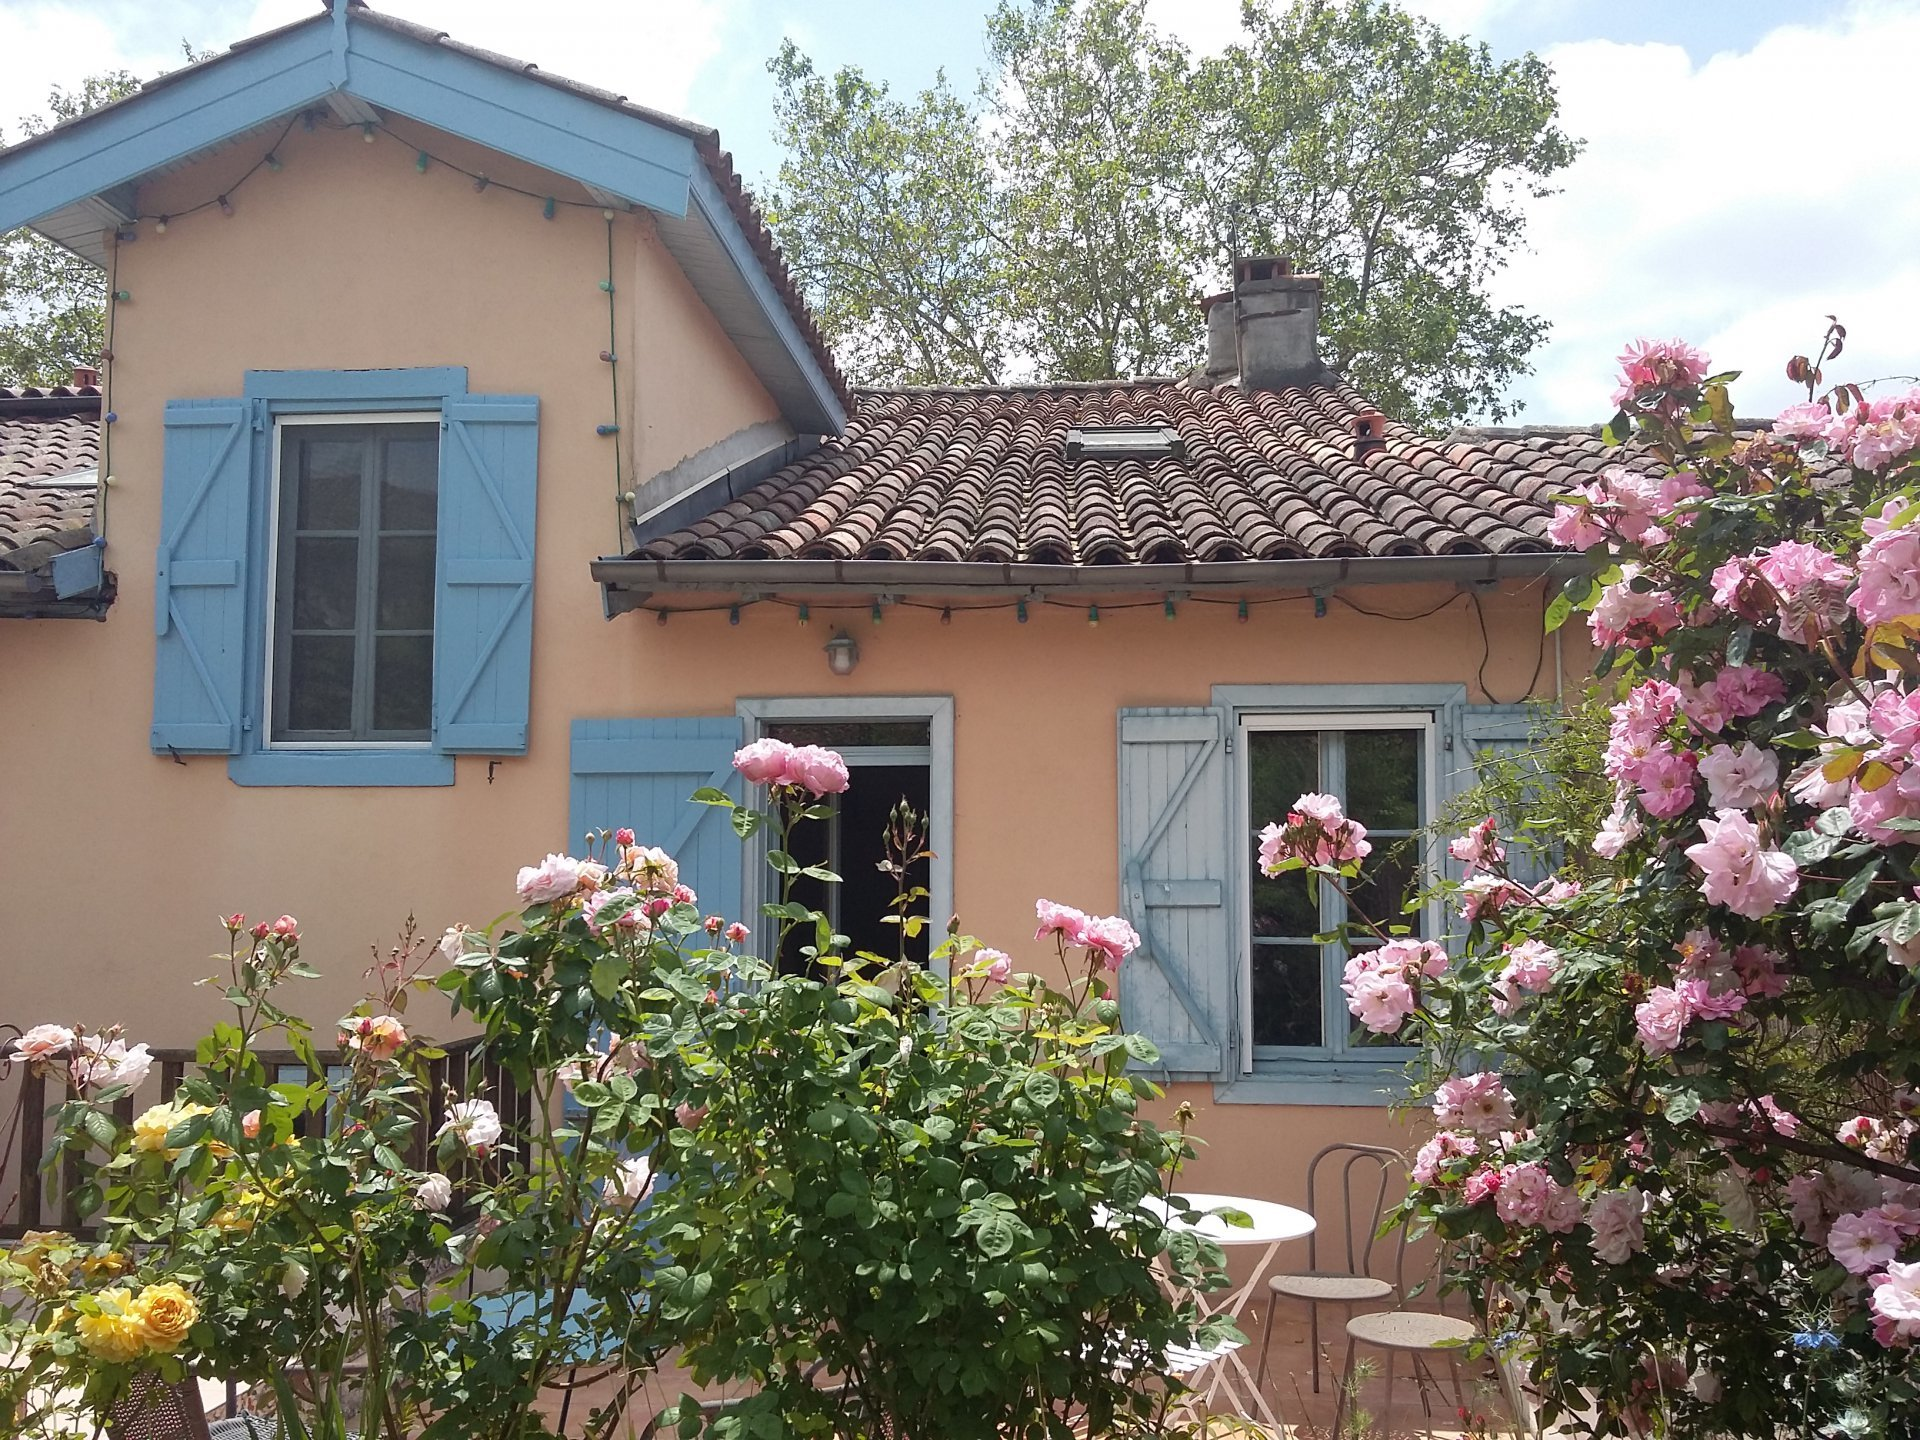 Village house with 1 gite, Pyrenees view, garden